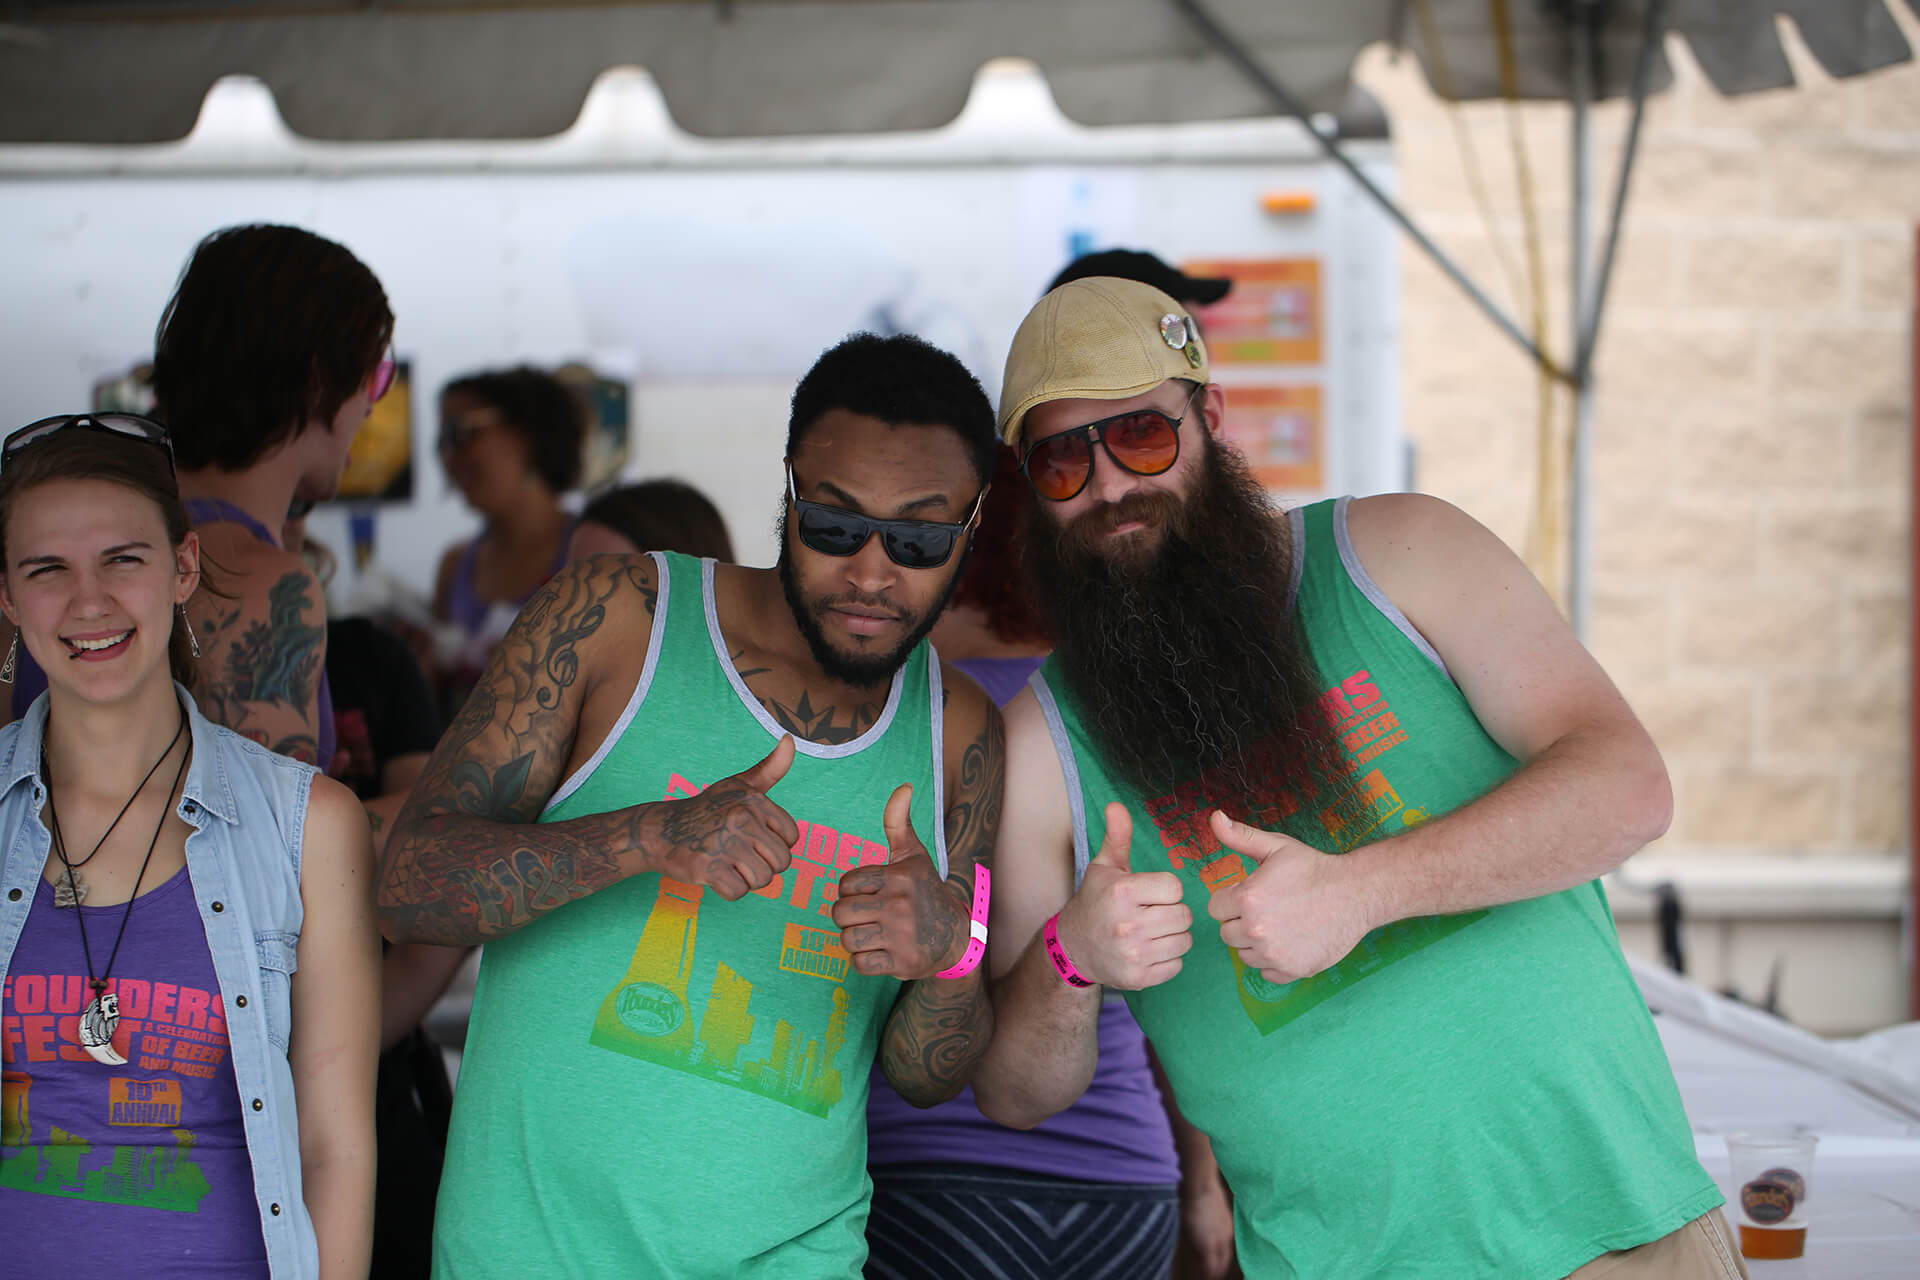 Two men wearing Founders Fest shirts giving thumbs up